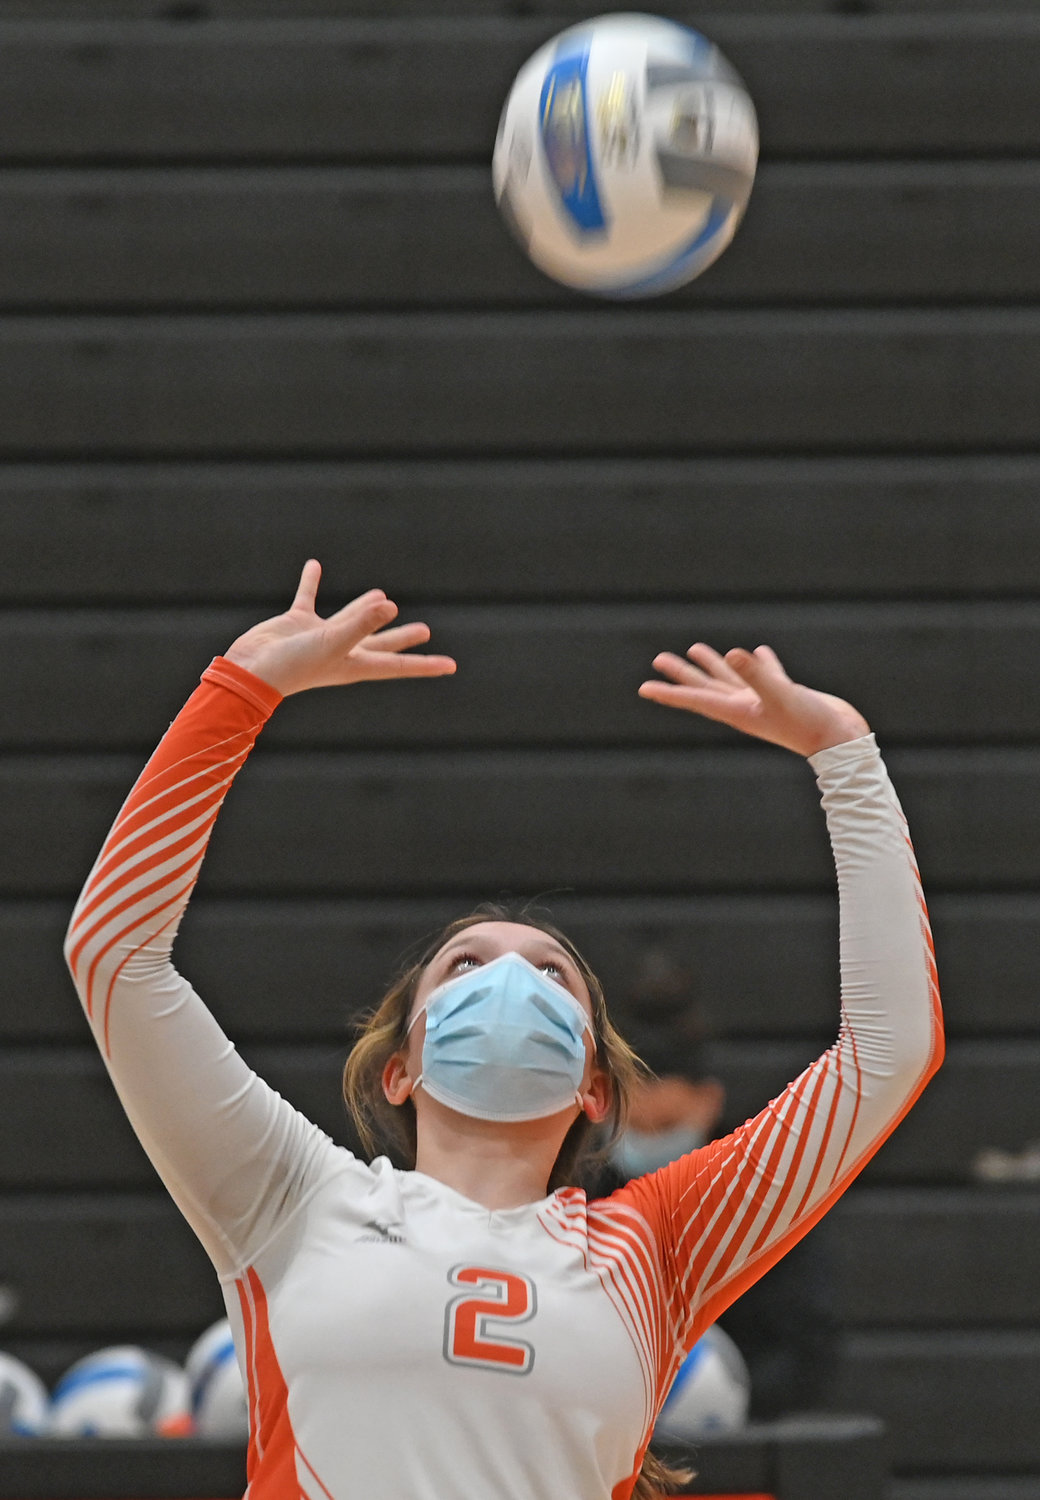 SET — Rome Free Academy sophomore Alyce Frost prepares to set the ball for a kill during Monday night's Tri-Valley League game at RFA. Match details were unavailable as of press time.